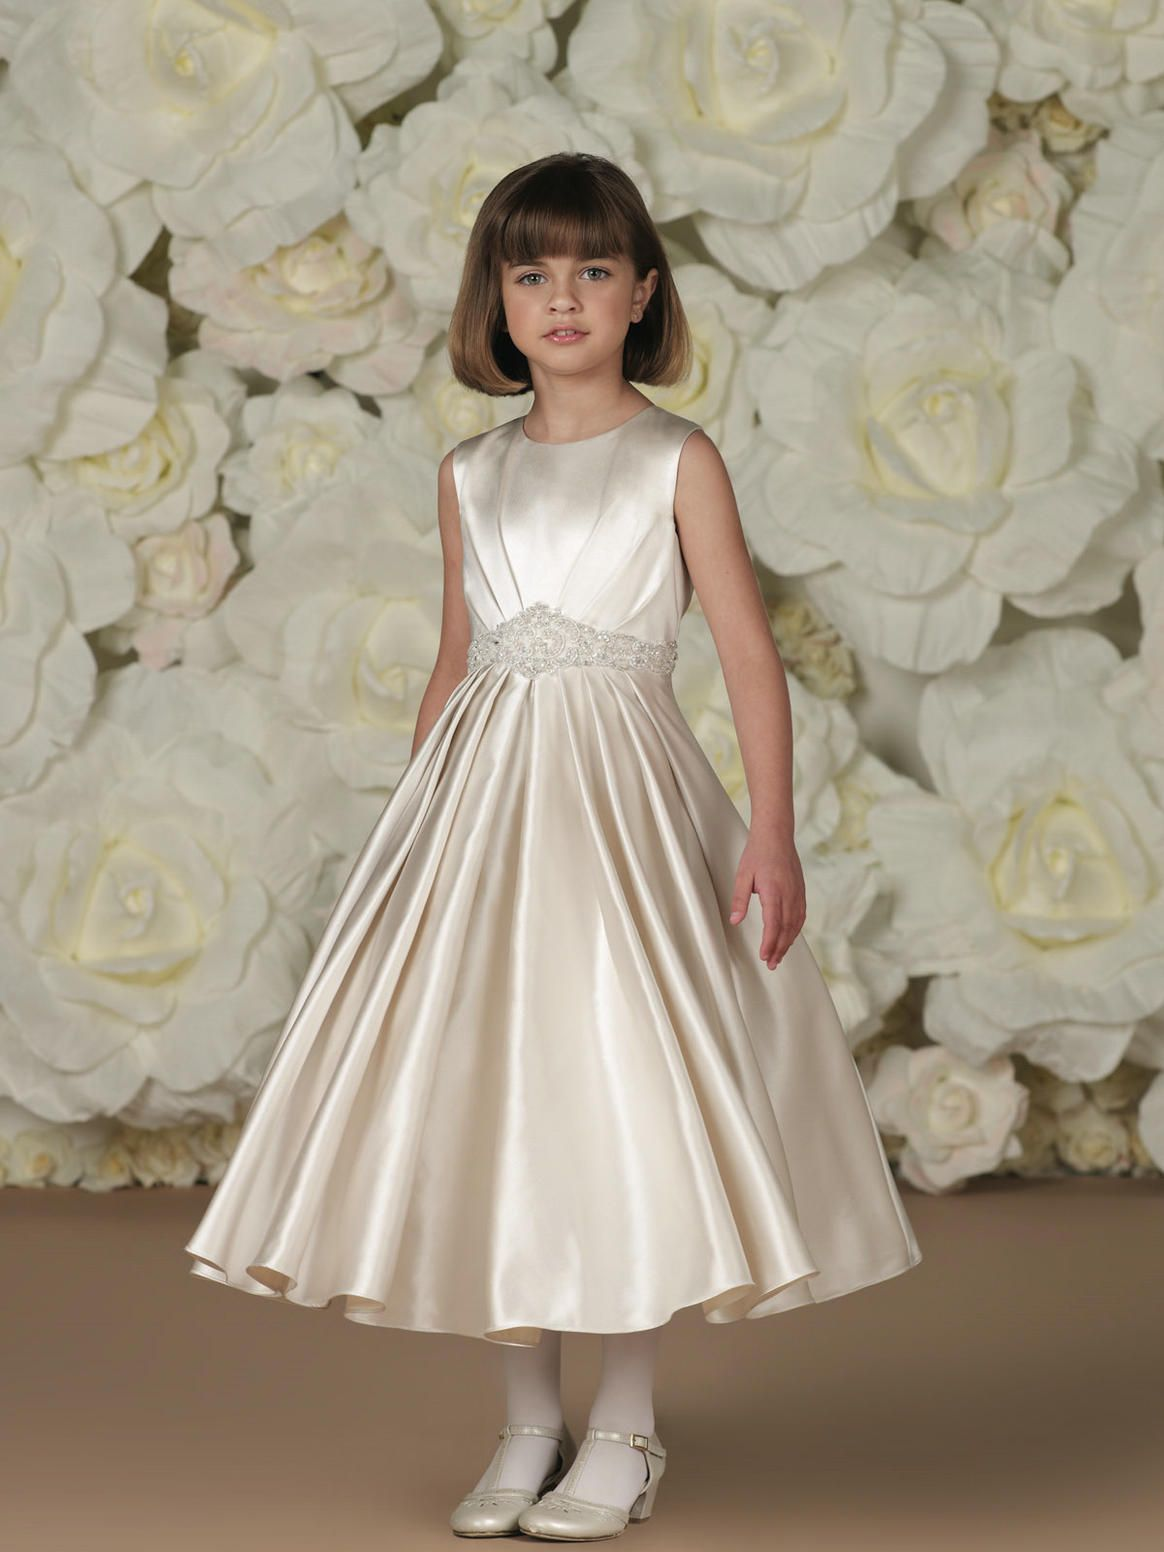 Wedding Little Girls Dresses dresses for little girls photo album fashion trends and models collection pictures and